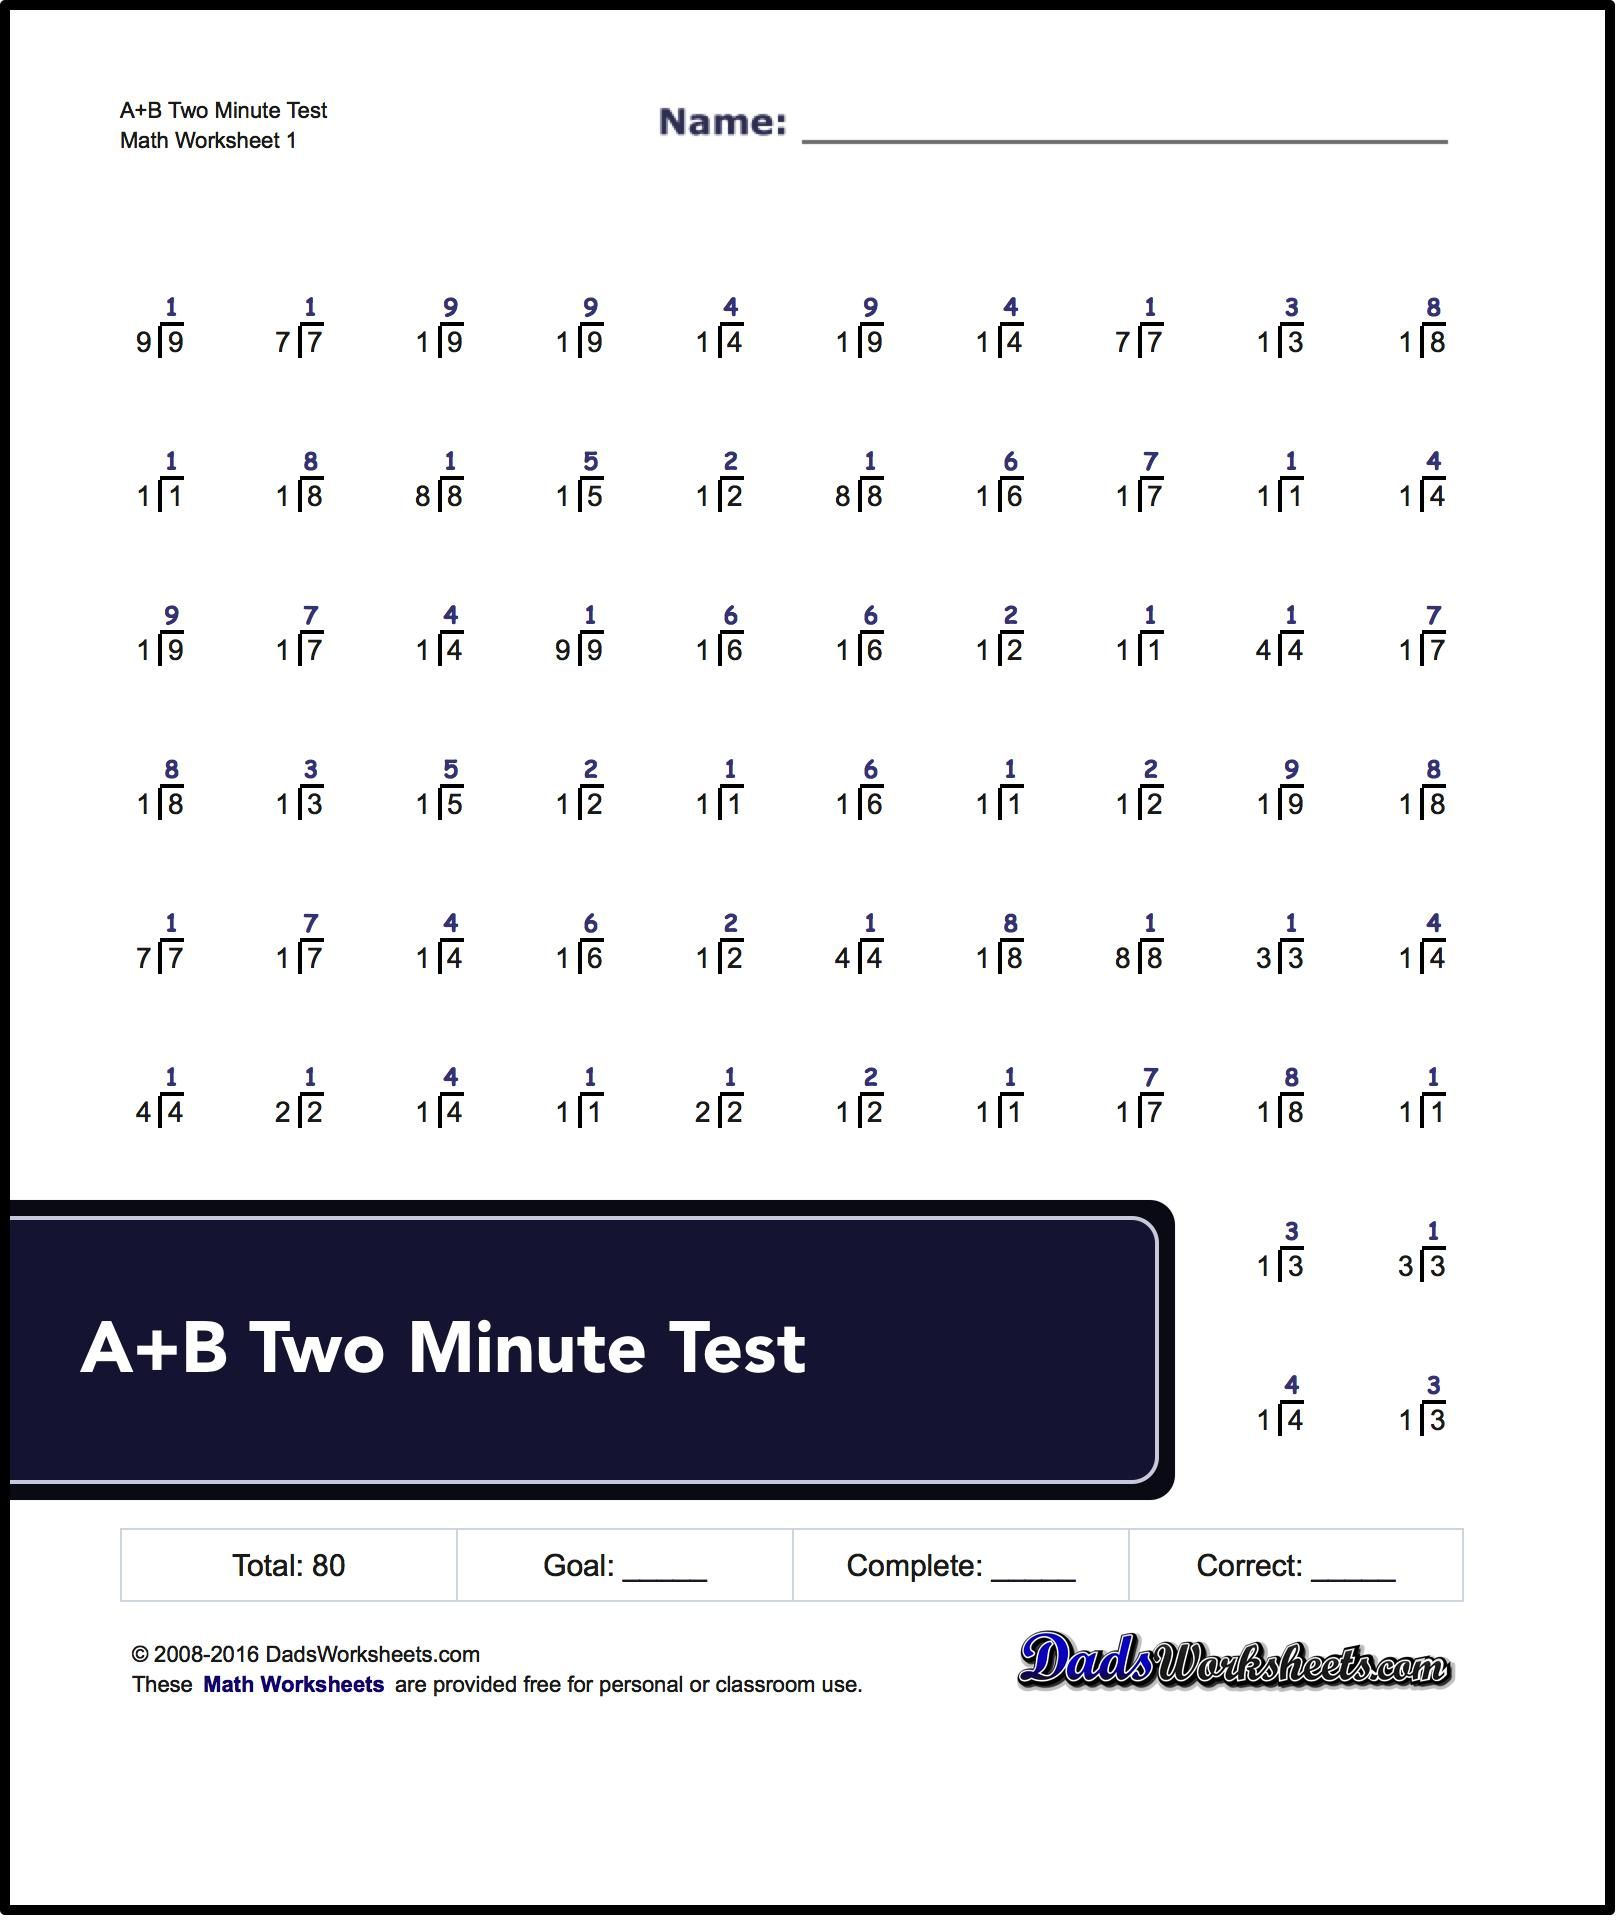 Worksheets Math Minutes Worksheets 80 problem division worksheets similar to rocketmath tests designed for two minute drills each of these co